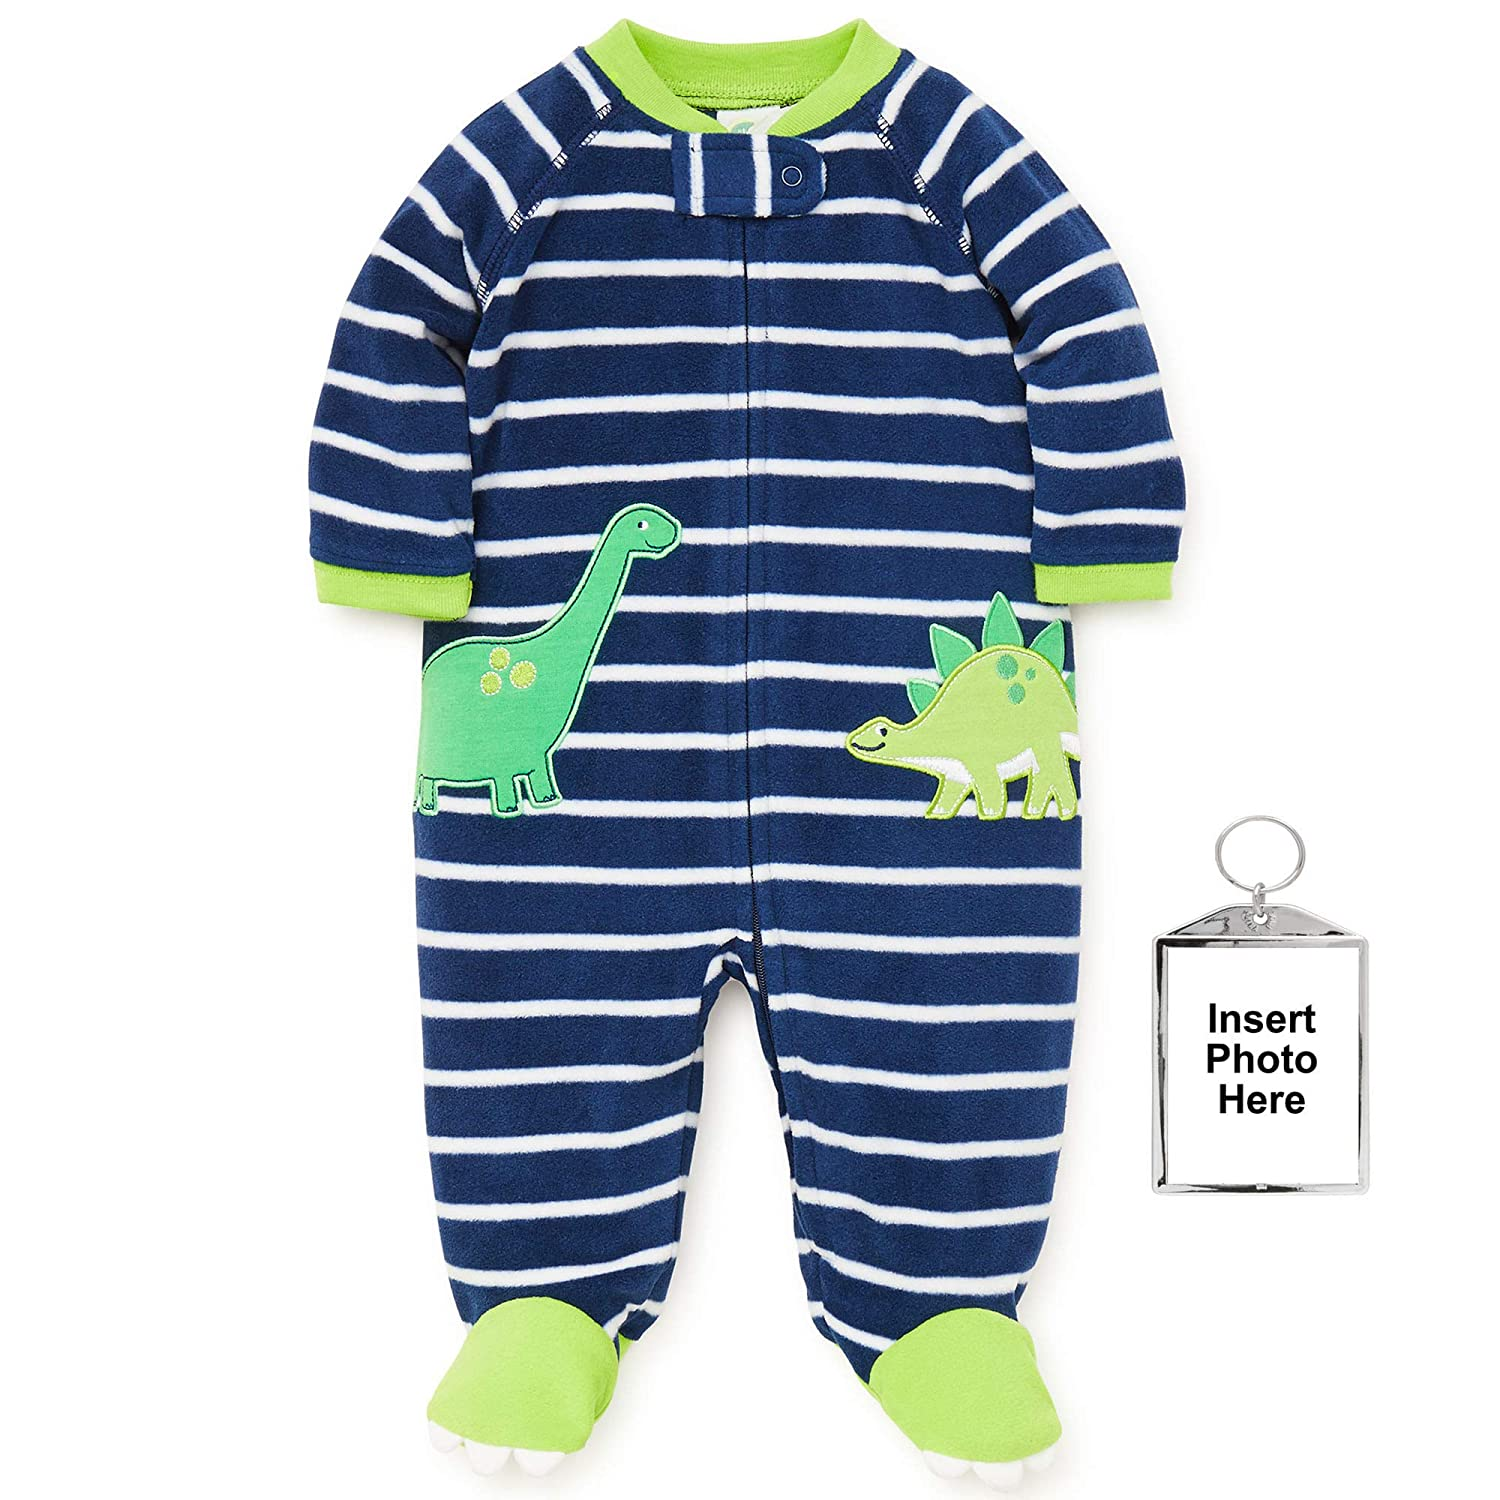 05d91ccb68 Amazon.com  Little Me Warm Fleece Baby Pajamas Footed Blanket Sleeper Footie  Navy Dinosaur 3 Months  Baby